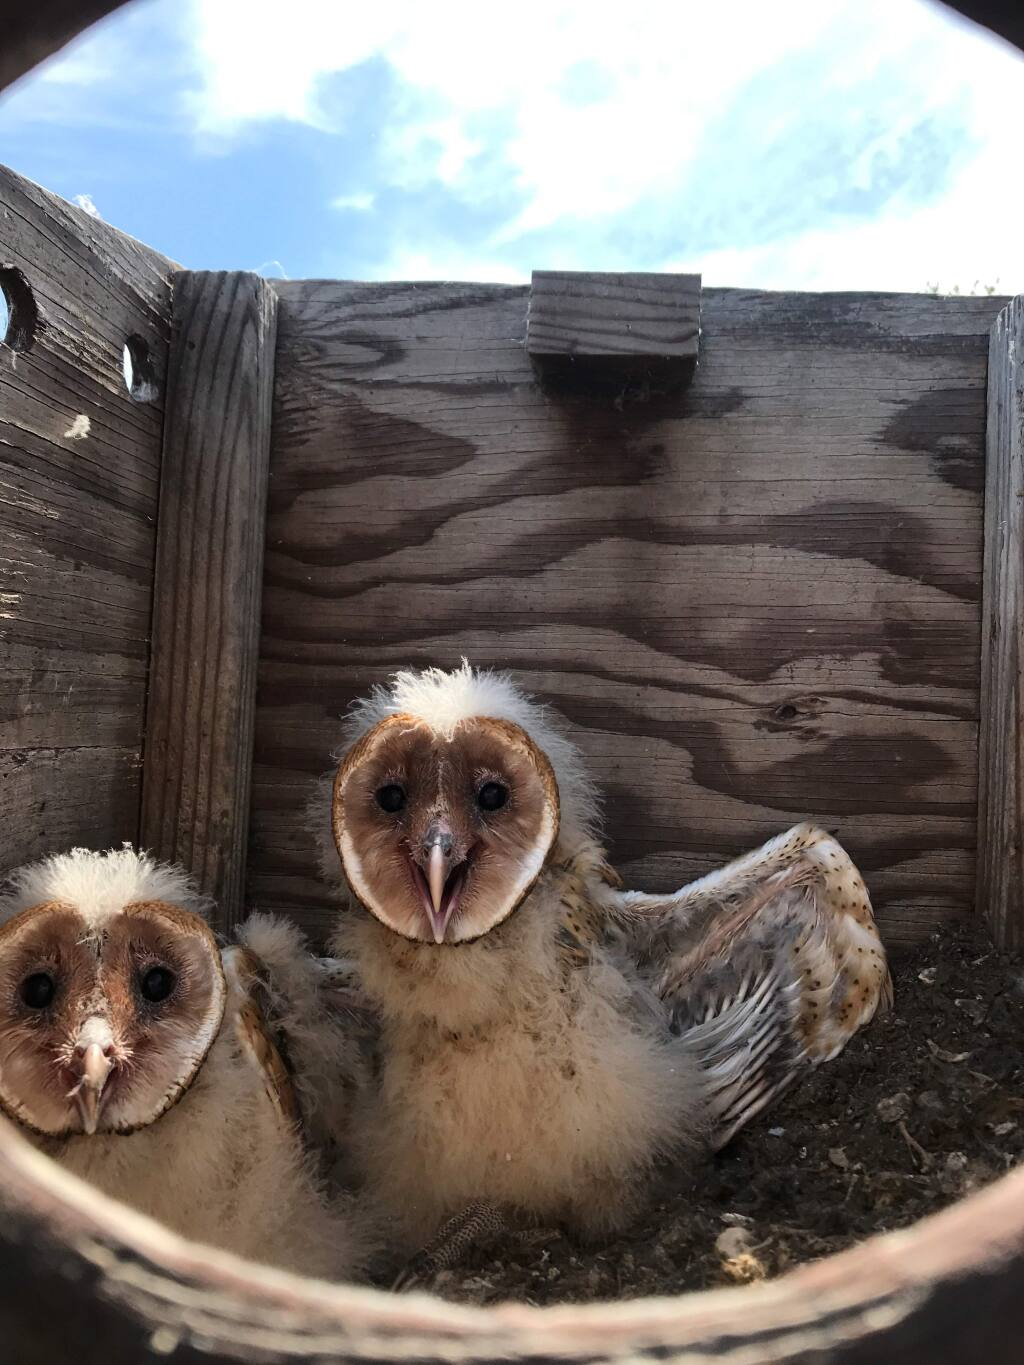 Baby barn owls, found in an unmaintained shelter box, that had fallen off the roof of a barn and was baking in the open sun. (Sonoma County Wildlife Rescue).